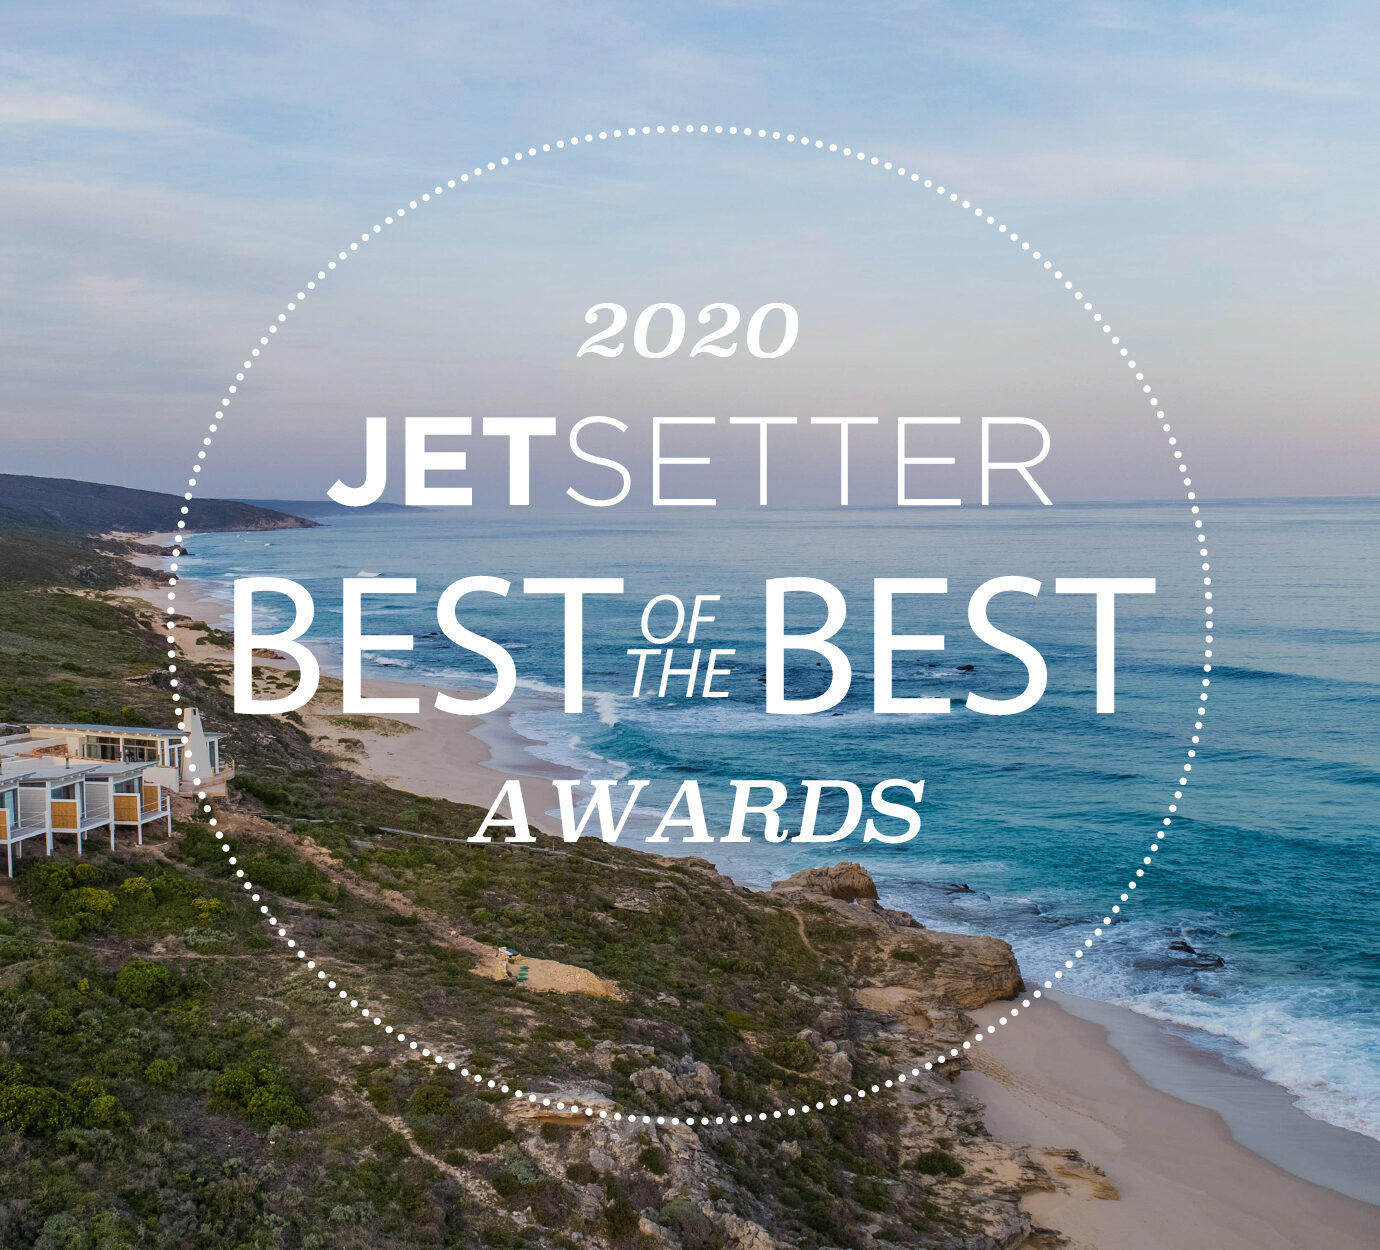 Jetsetter Best of the Best Awards 2020